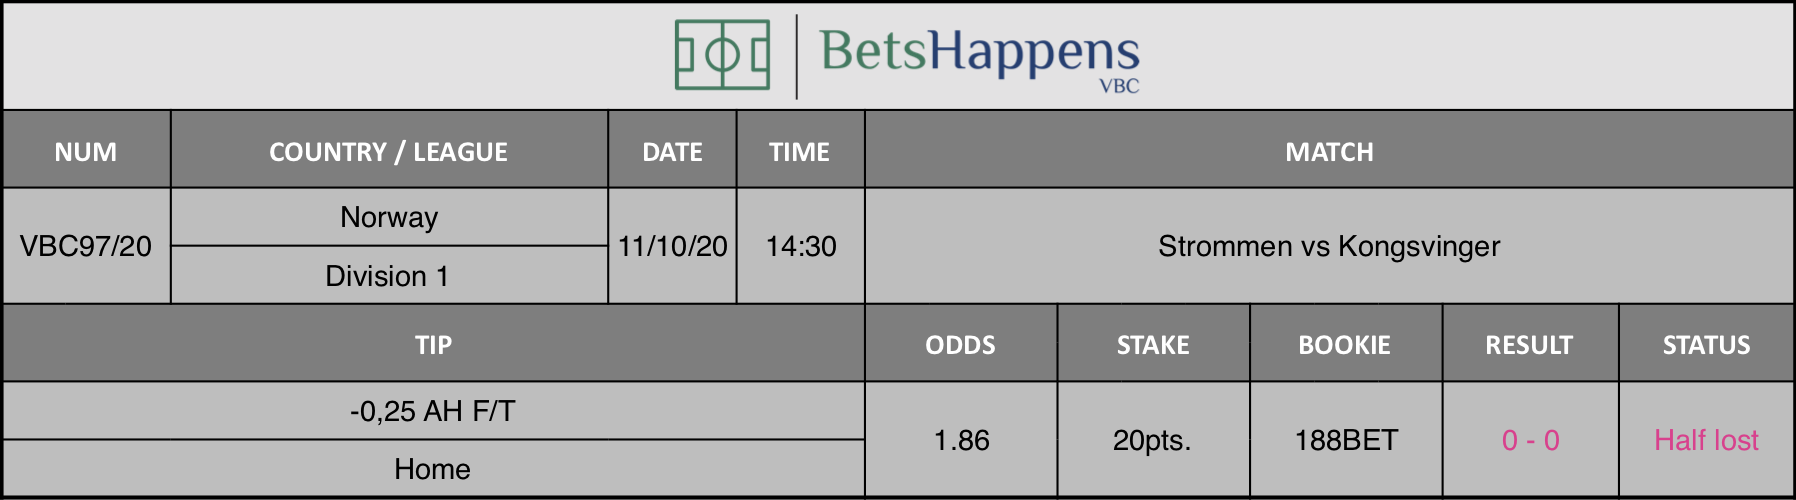 Results of our advice for the Strommen vs Kongsvinger match where -0.25 AH F / T Home is recommended.